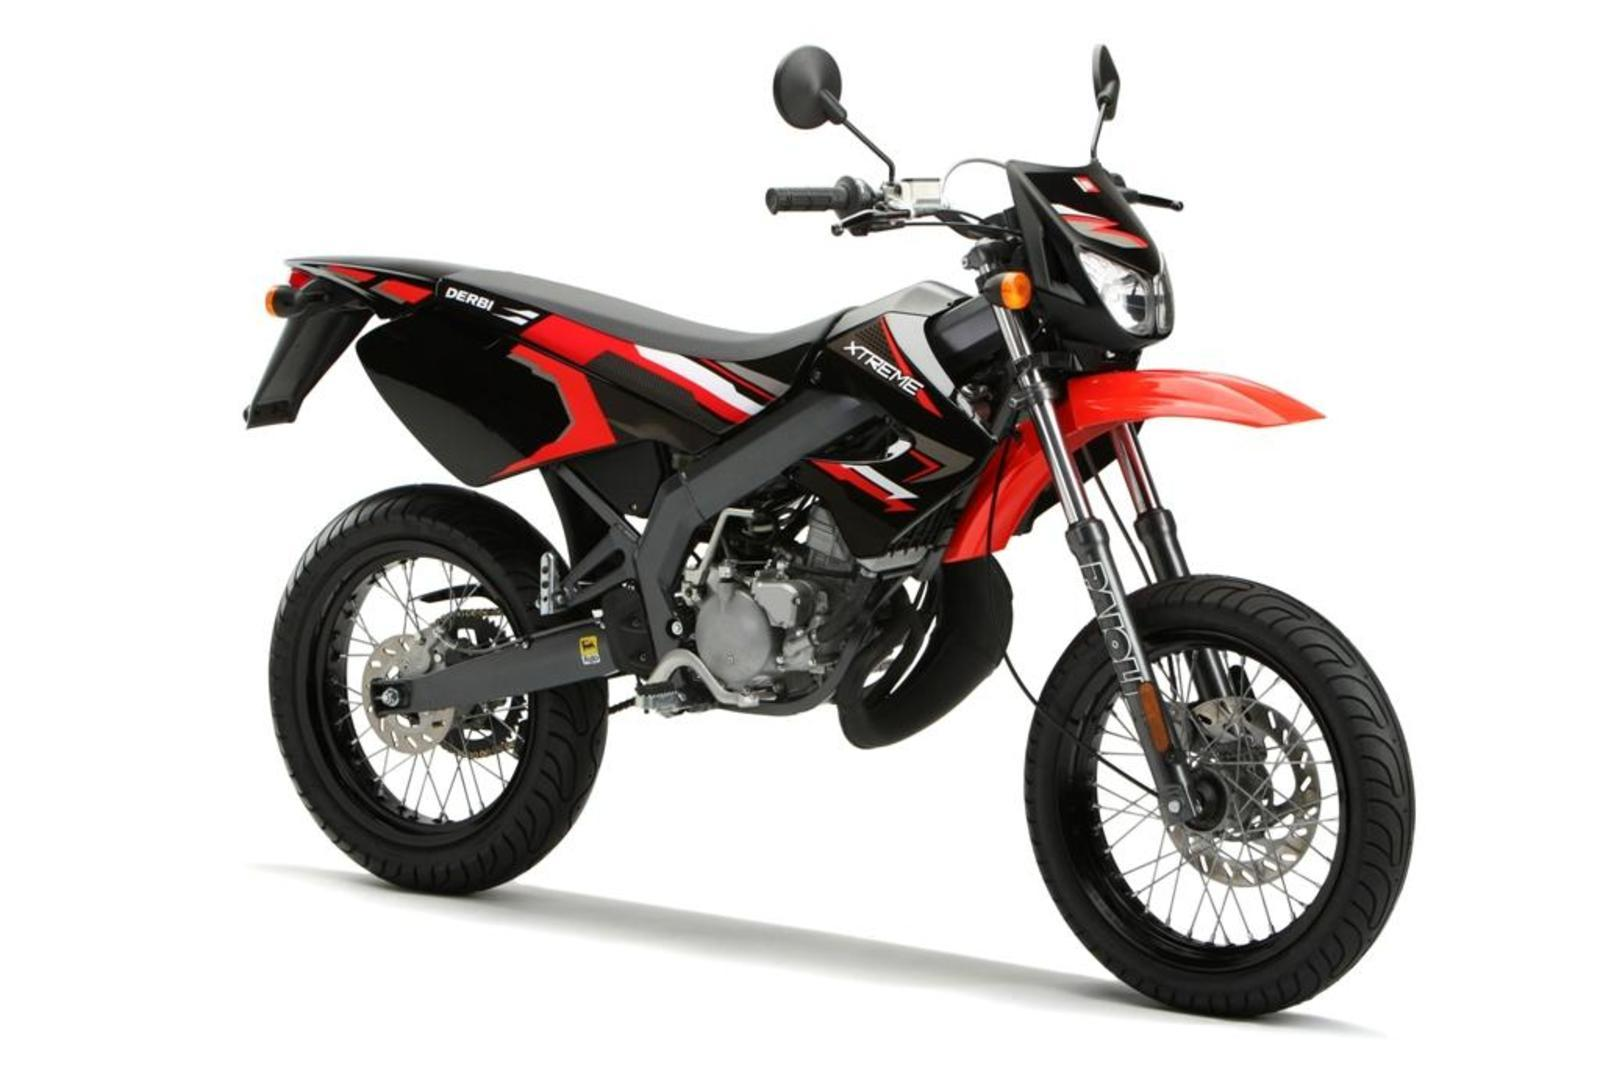 2013 derbi senda drd x treme 50 sm review top speed. Black Bedroom Furniture Sets. Home Design Ideas